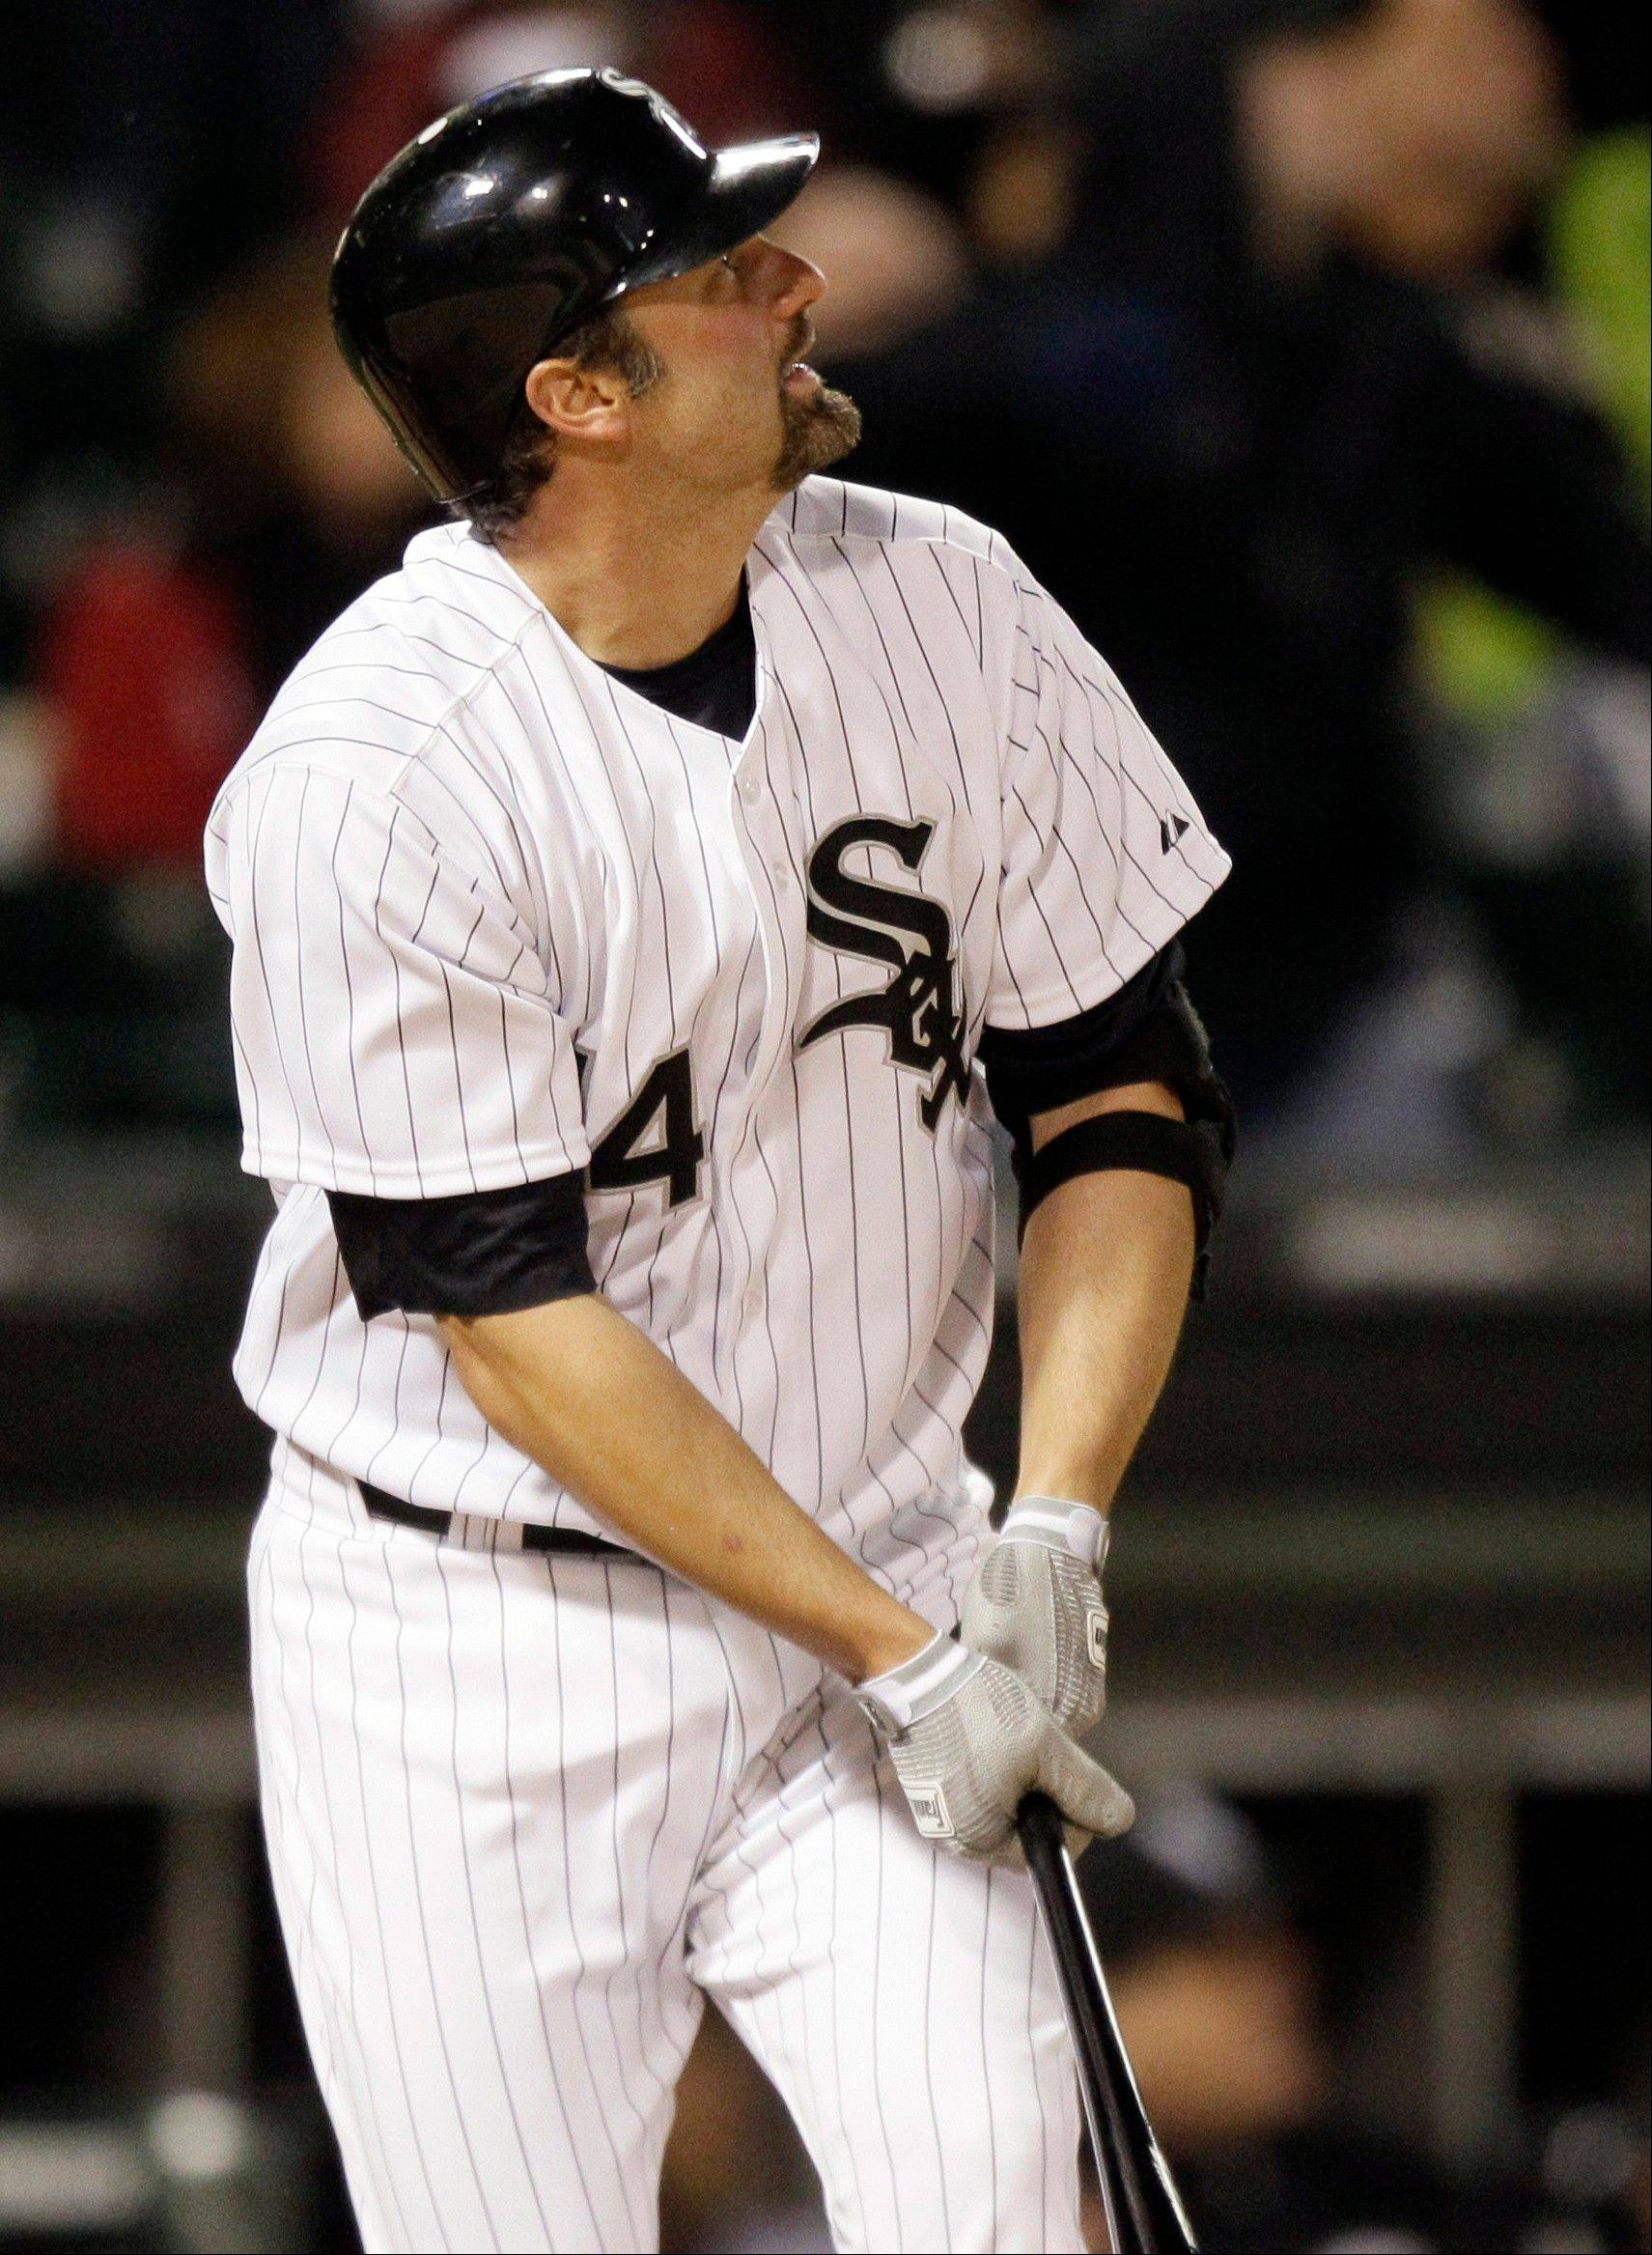 Konerko not about to rest on his laurels